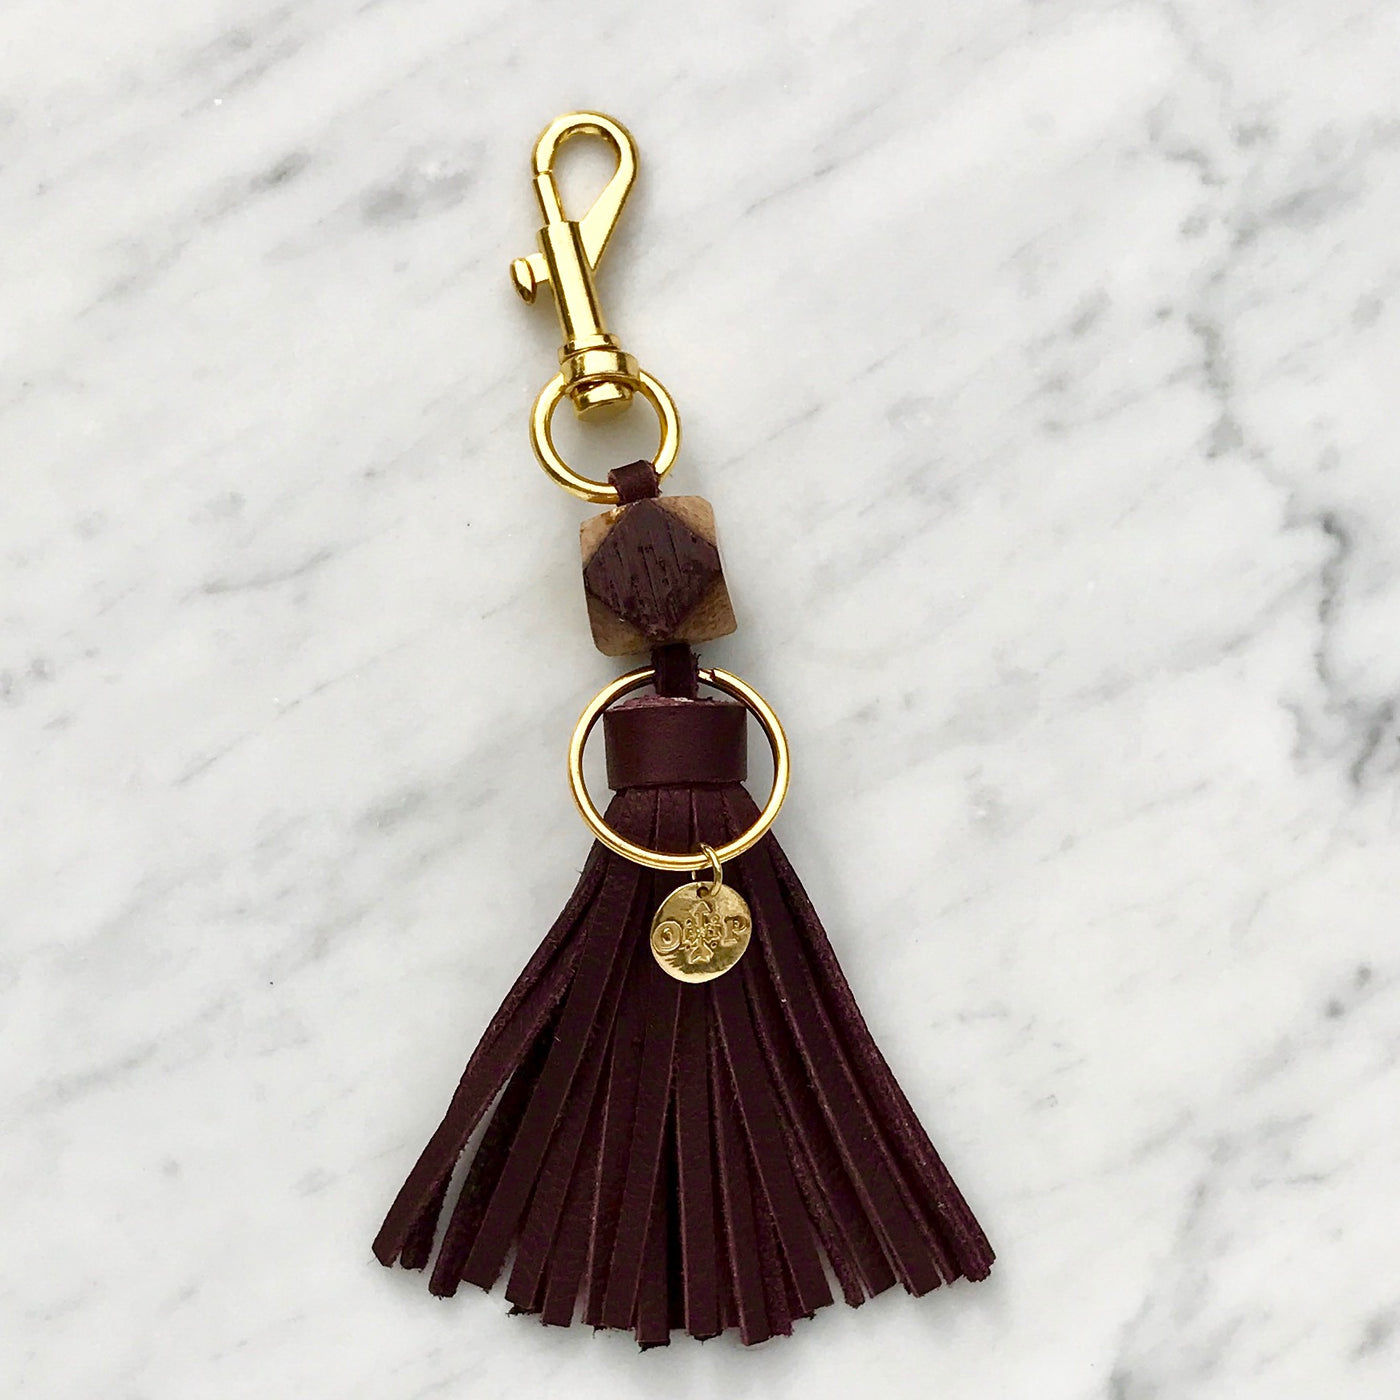 Cabernet Wine Barrel Tassel Keychain - Olive and Poppy